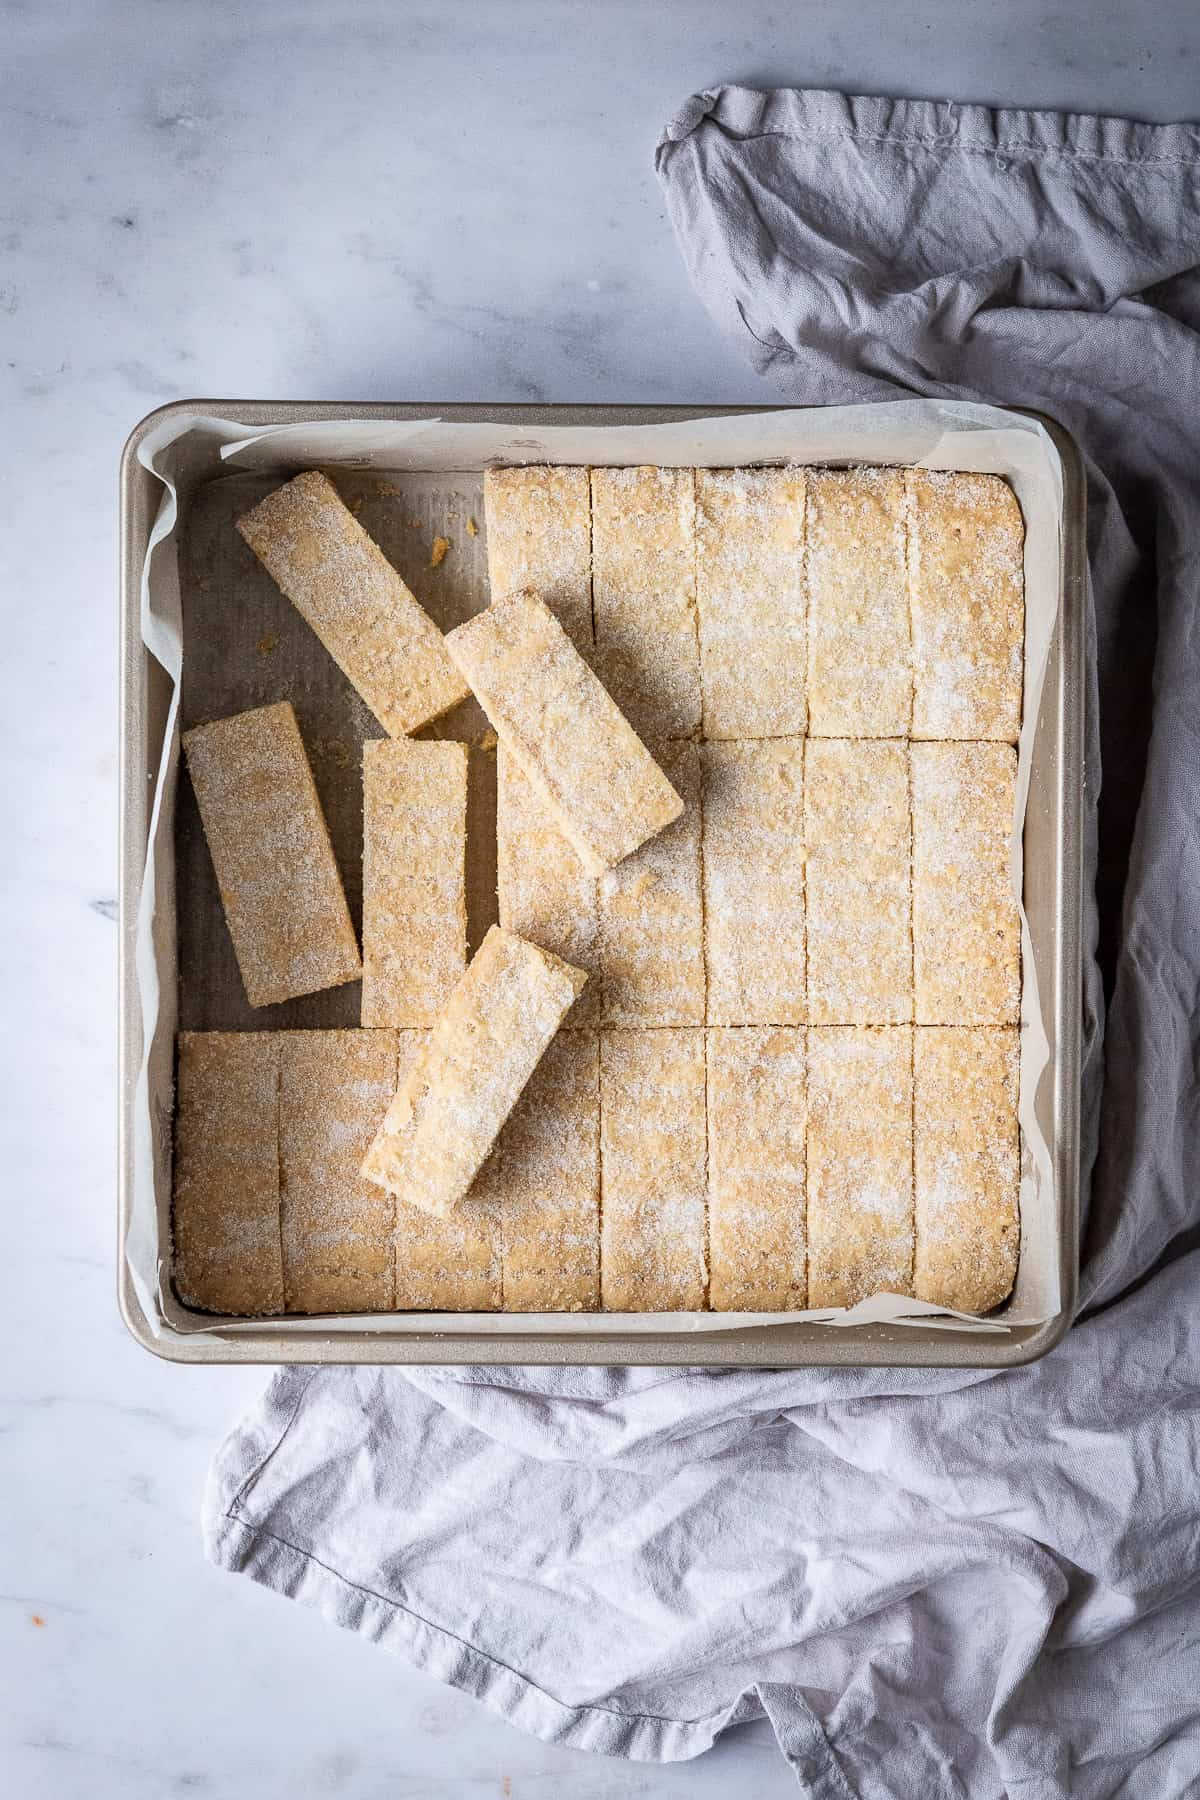 Vegan shortbread fingers in a square metal cake tin on a marble background with a grey cloth.